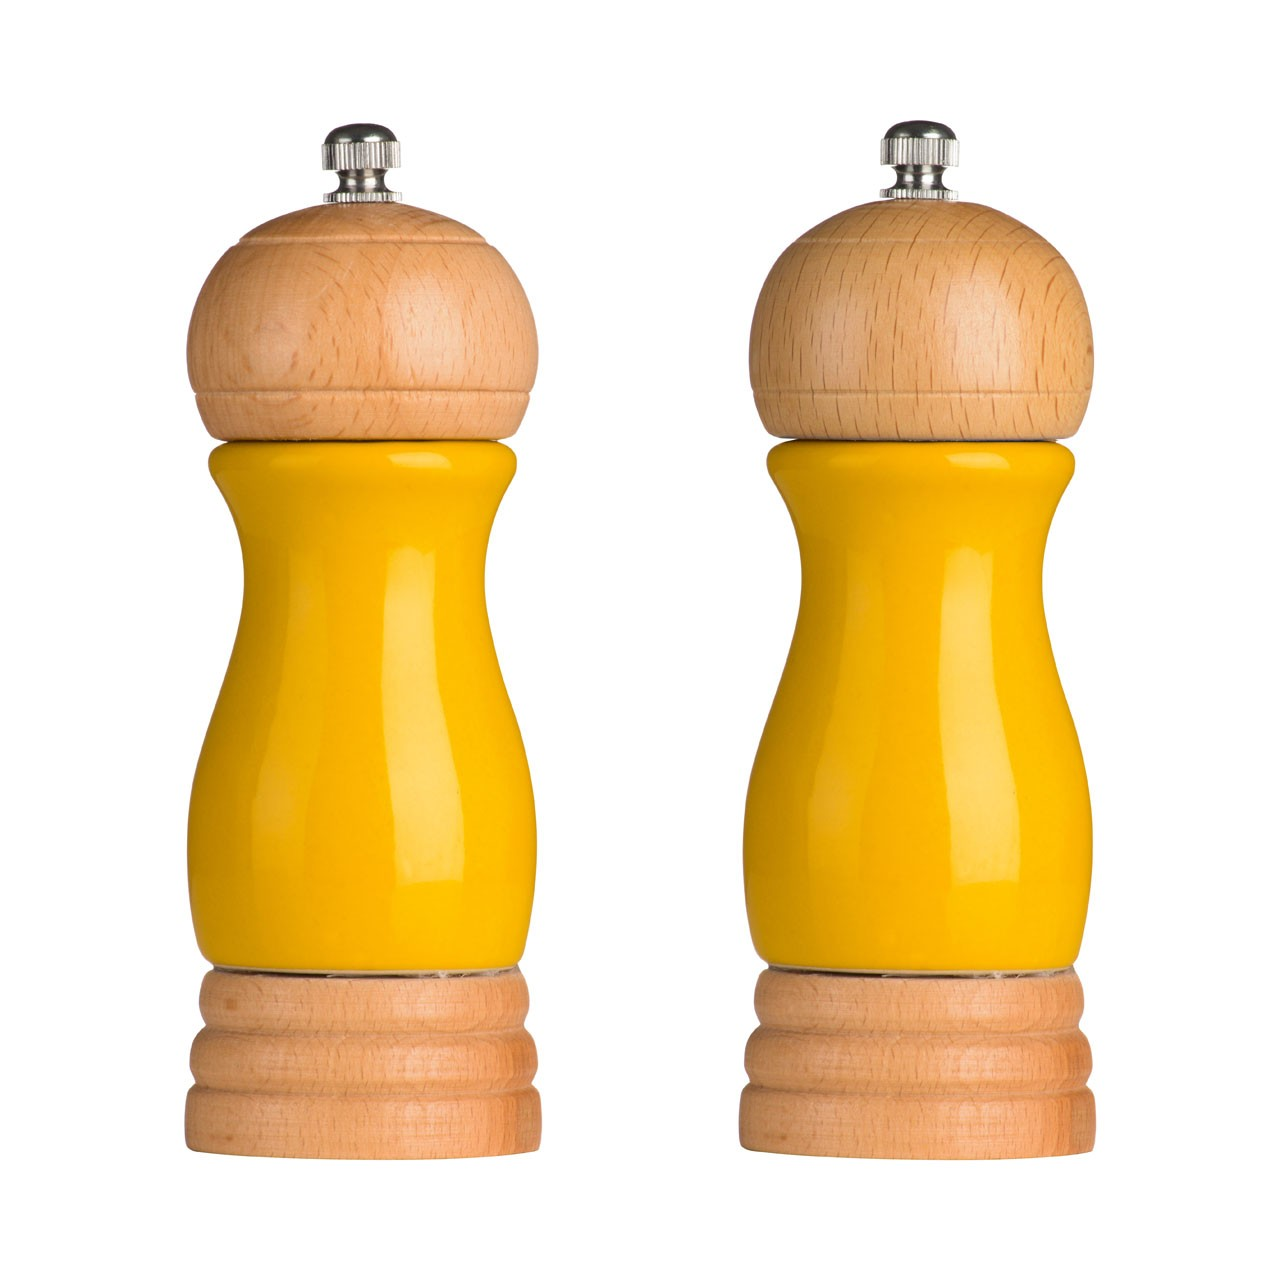 Rubberwood Salt and Pepper Mill Set - Yellow